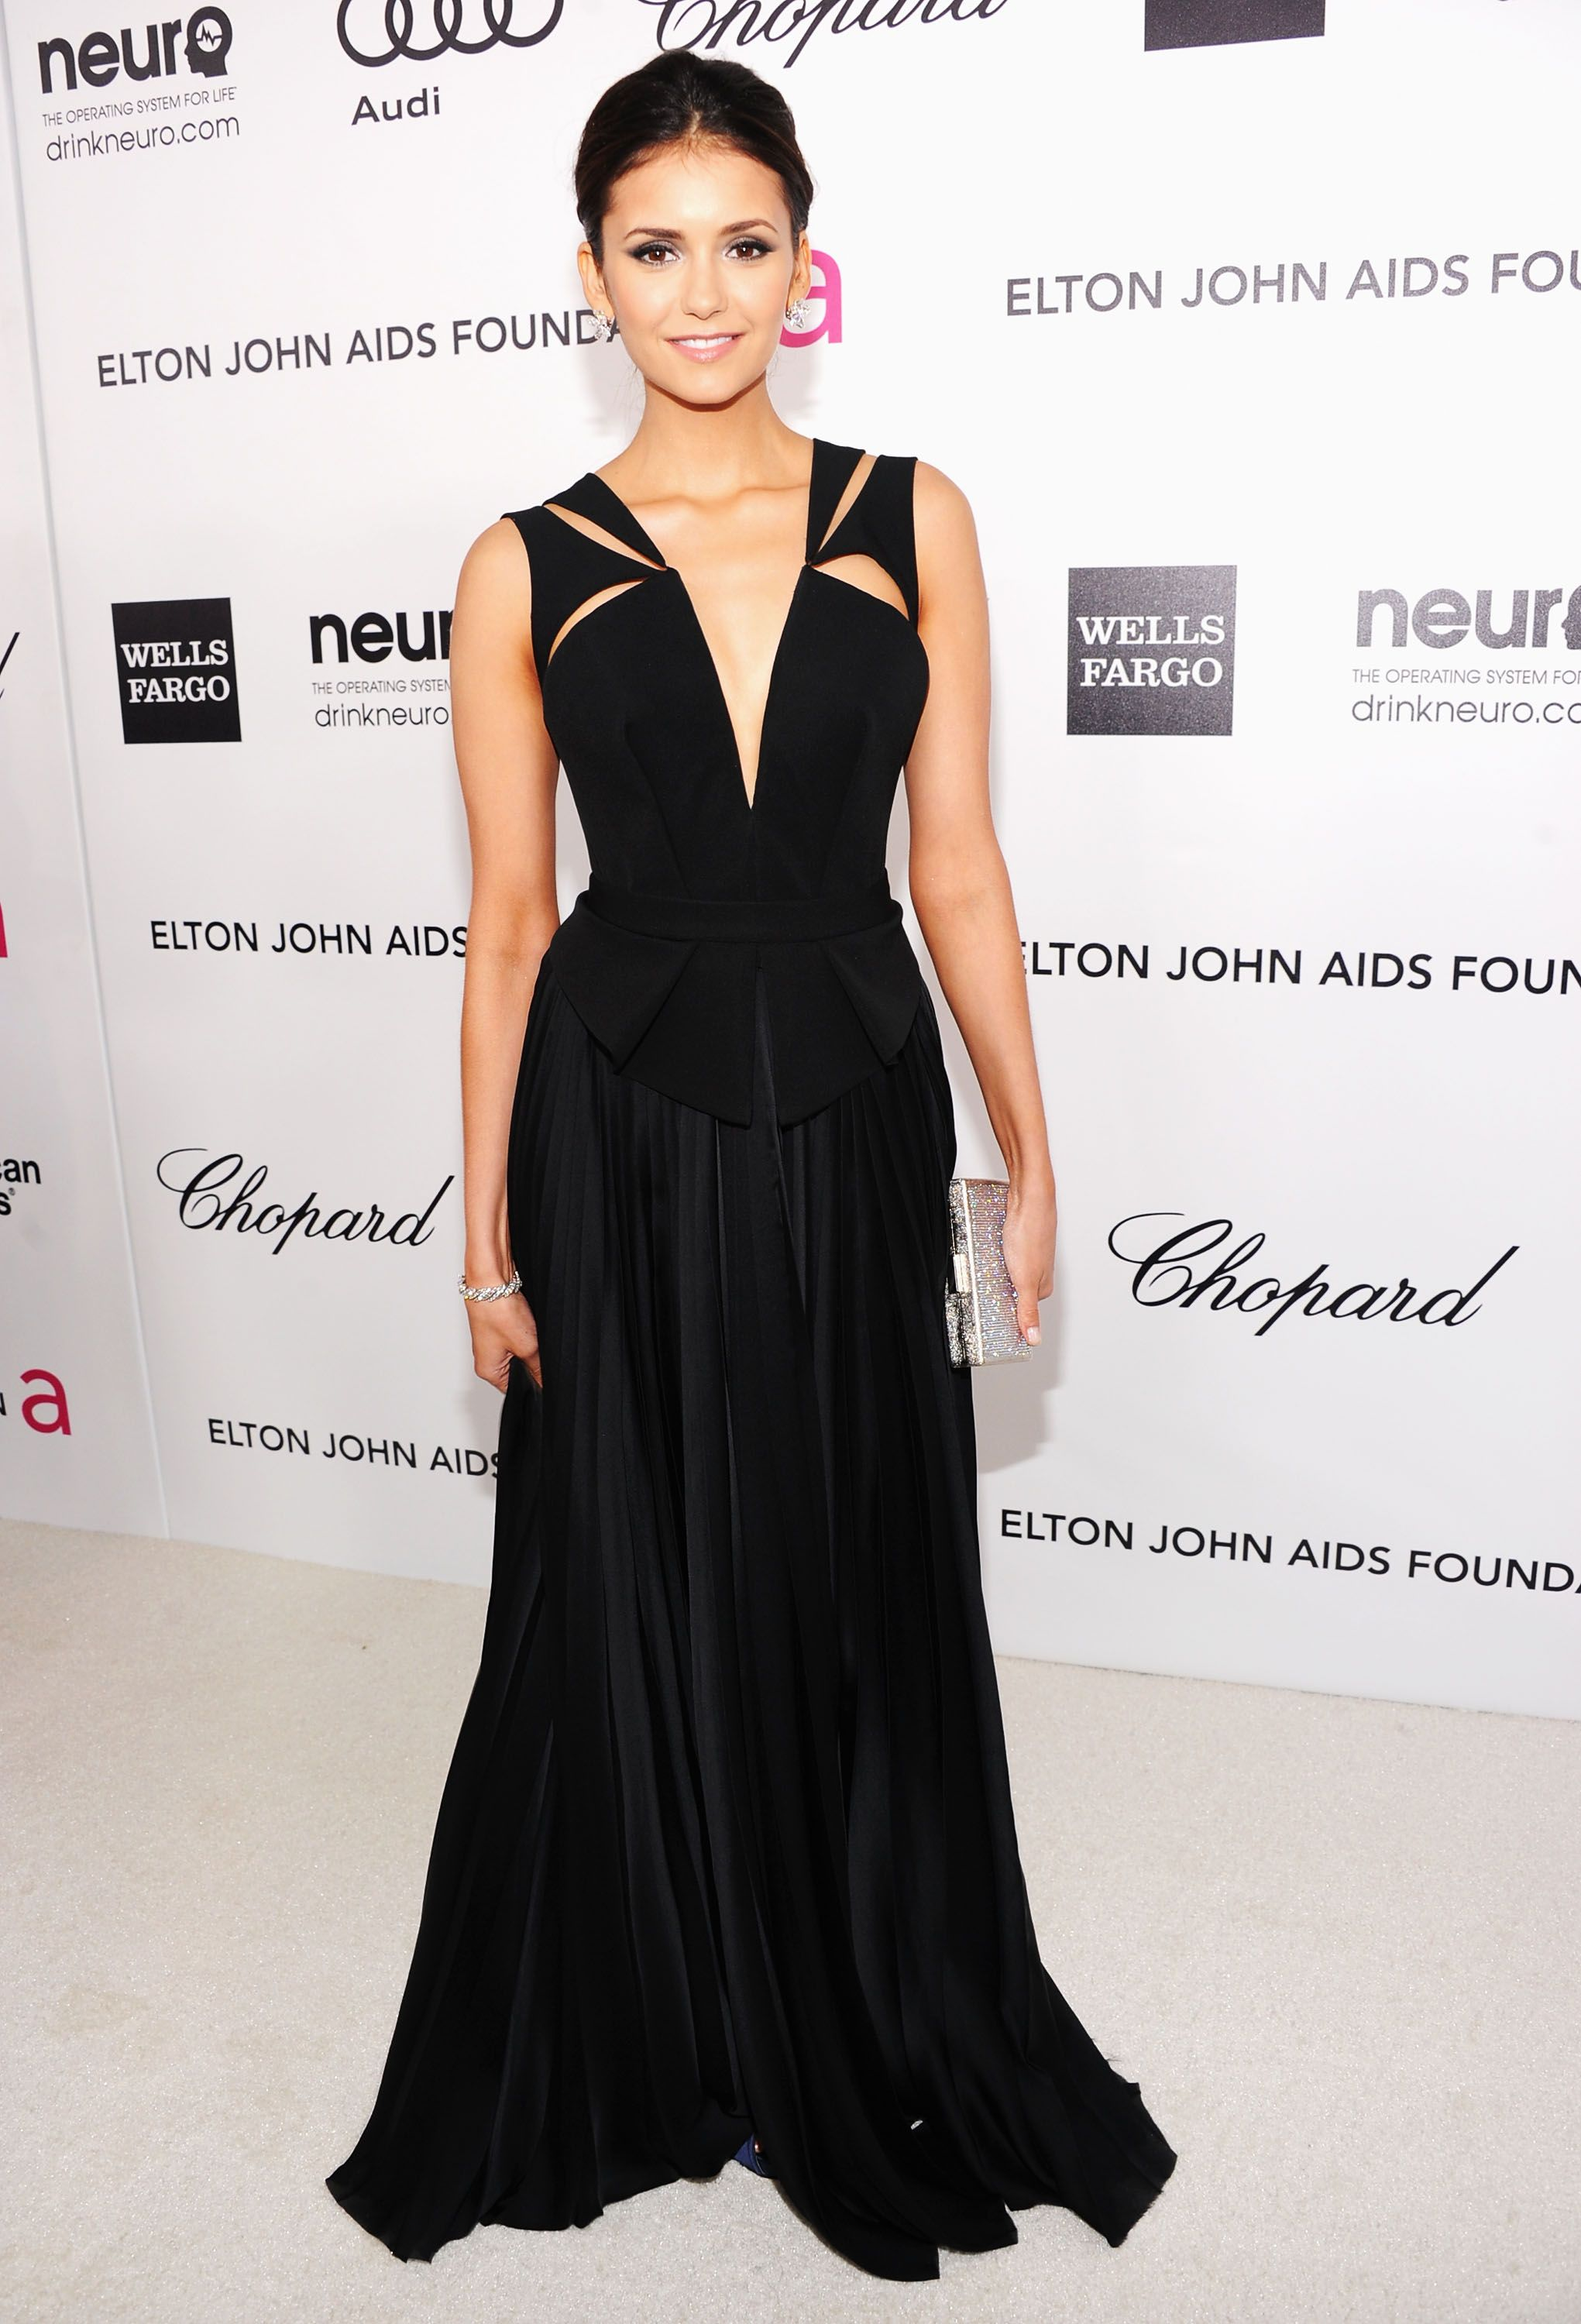 98a0760d4ac75 Nina Dobrev wearing J. Mendel at 20th Annual Elton John AIDS Foundation  Academy Awards Viewing Party.  RedCarpet